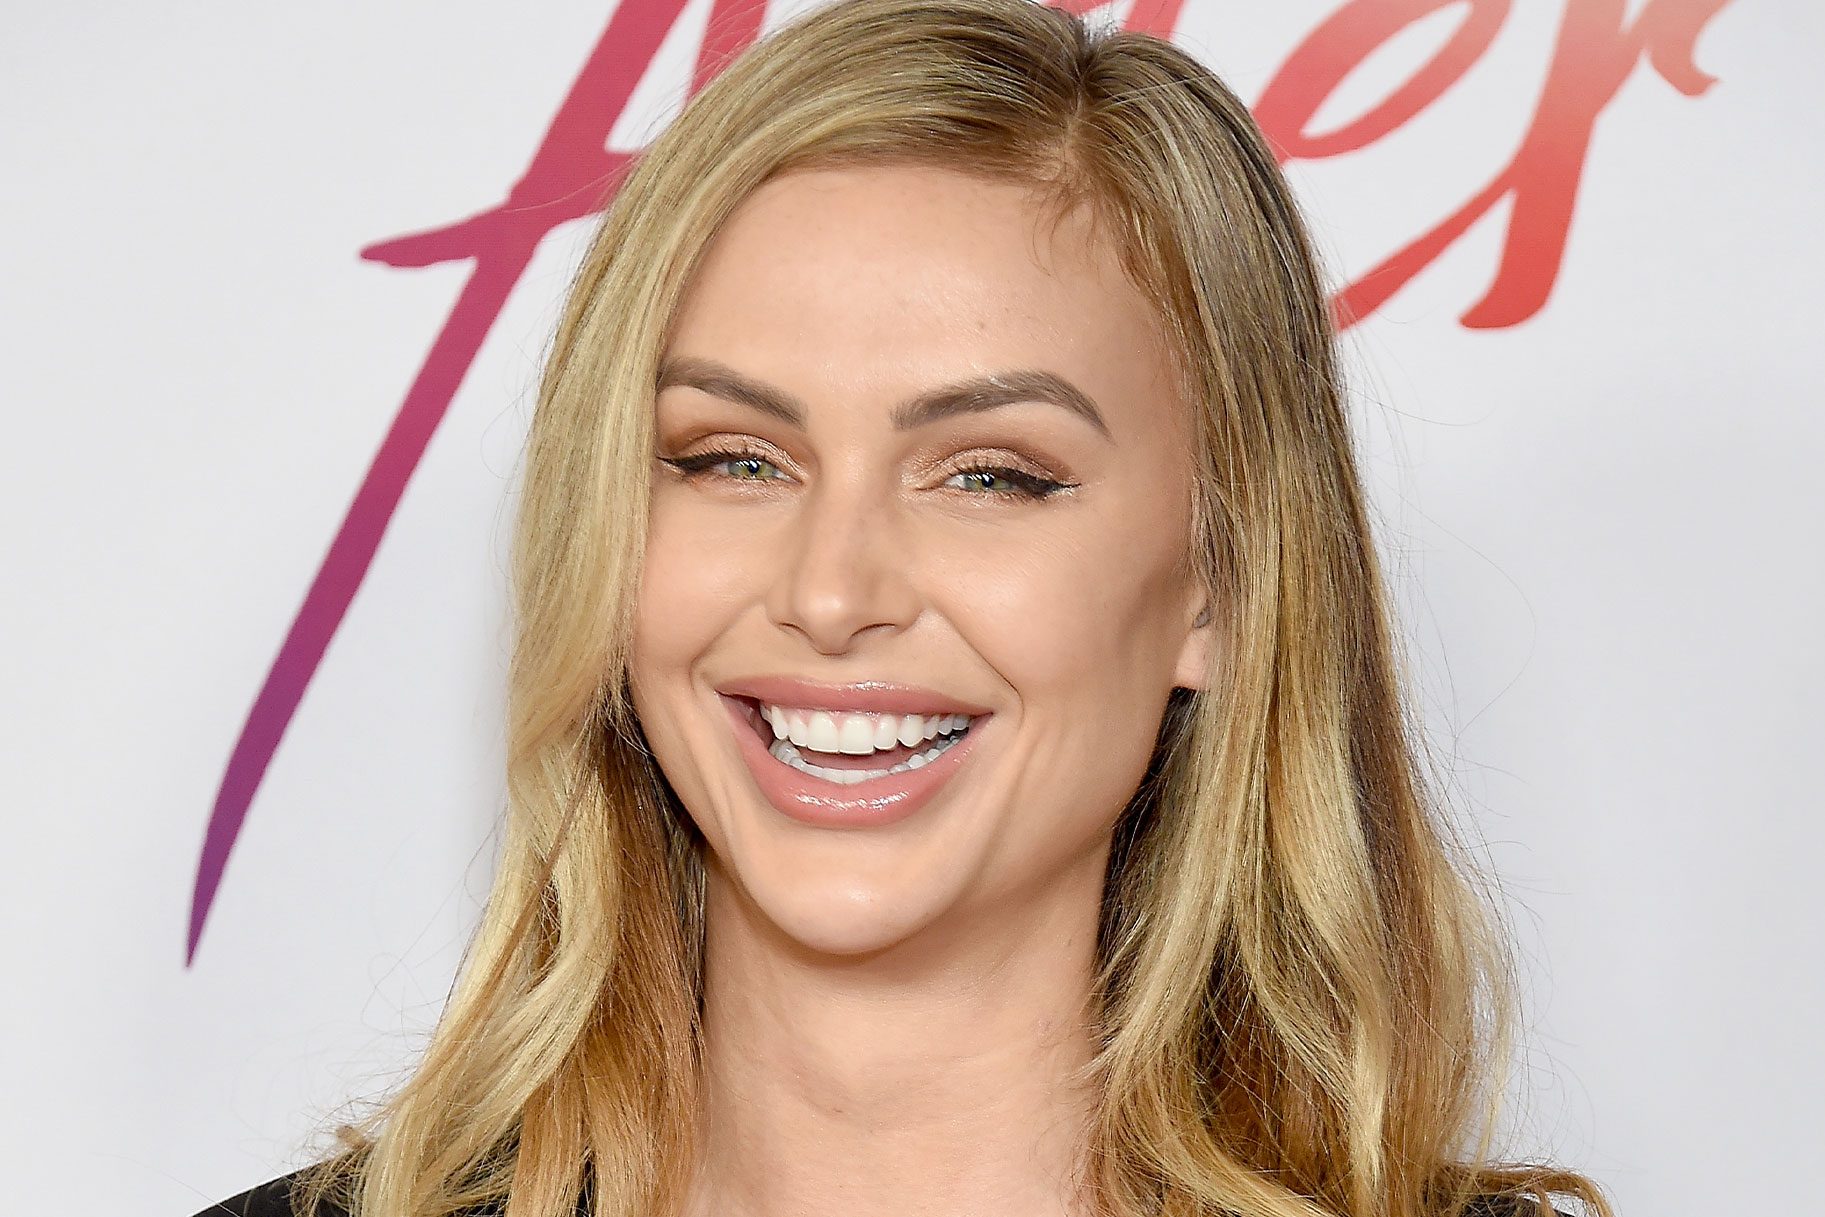 Lala Kent Post The First Ever Photo Of Her Baby Girl's Adorable Face!